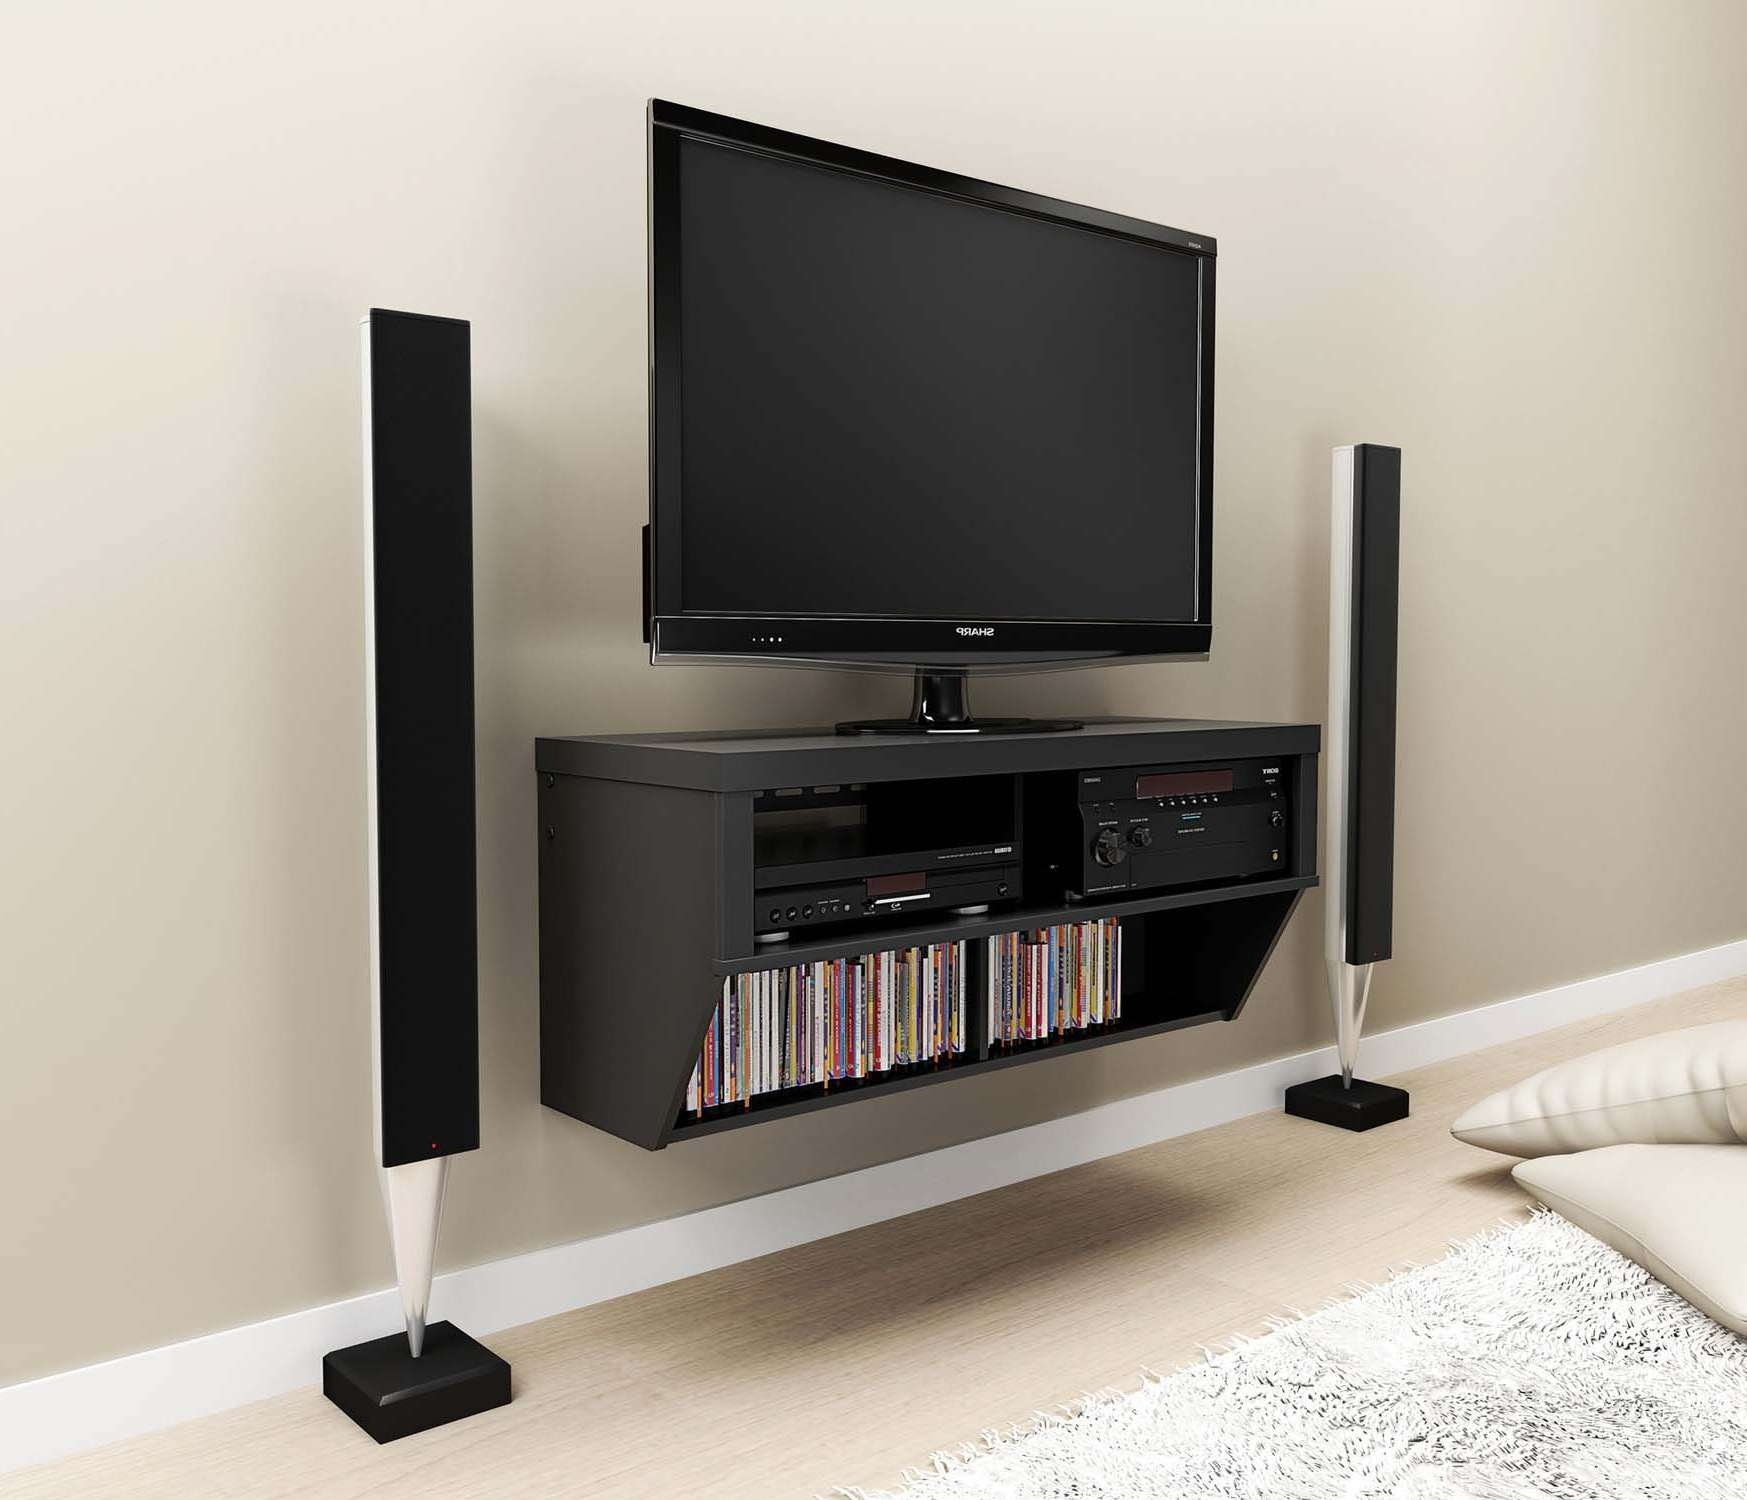 Black Stained Oak Wall Mounted Media Shelf And Tv Stand Of Trendy Inside White Wall Mounted Tv Stands (View 14 of 15)